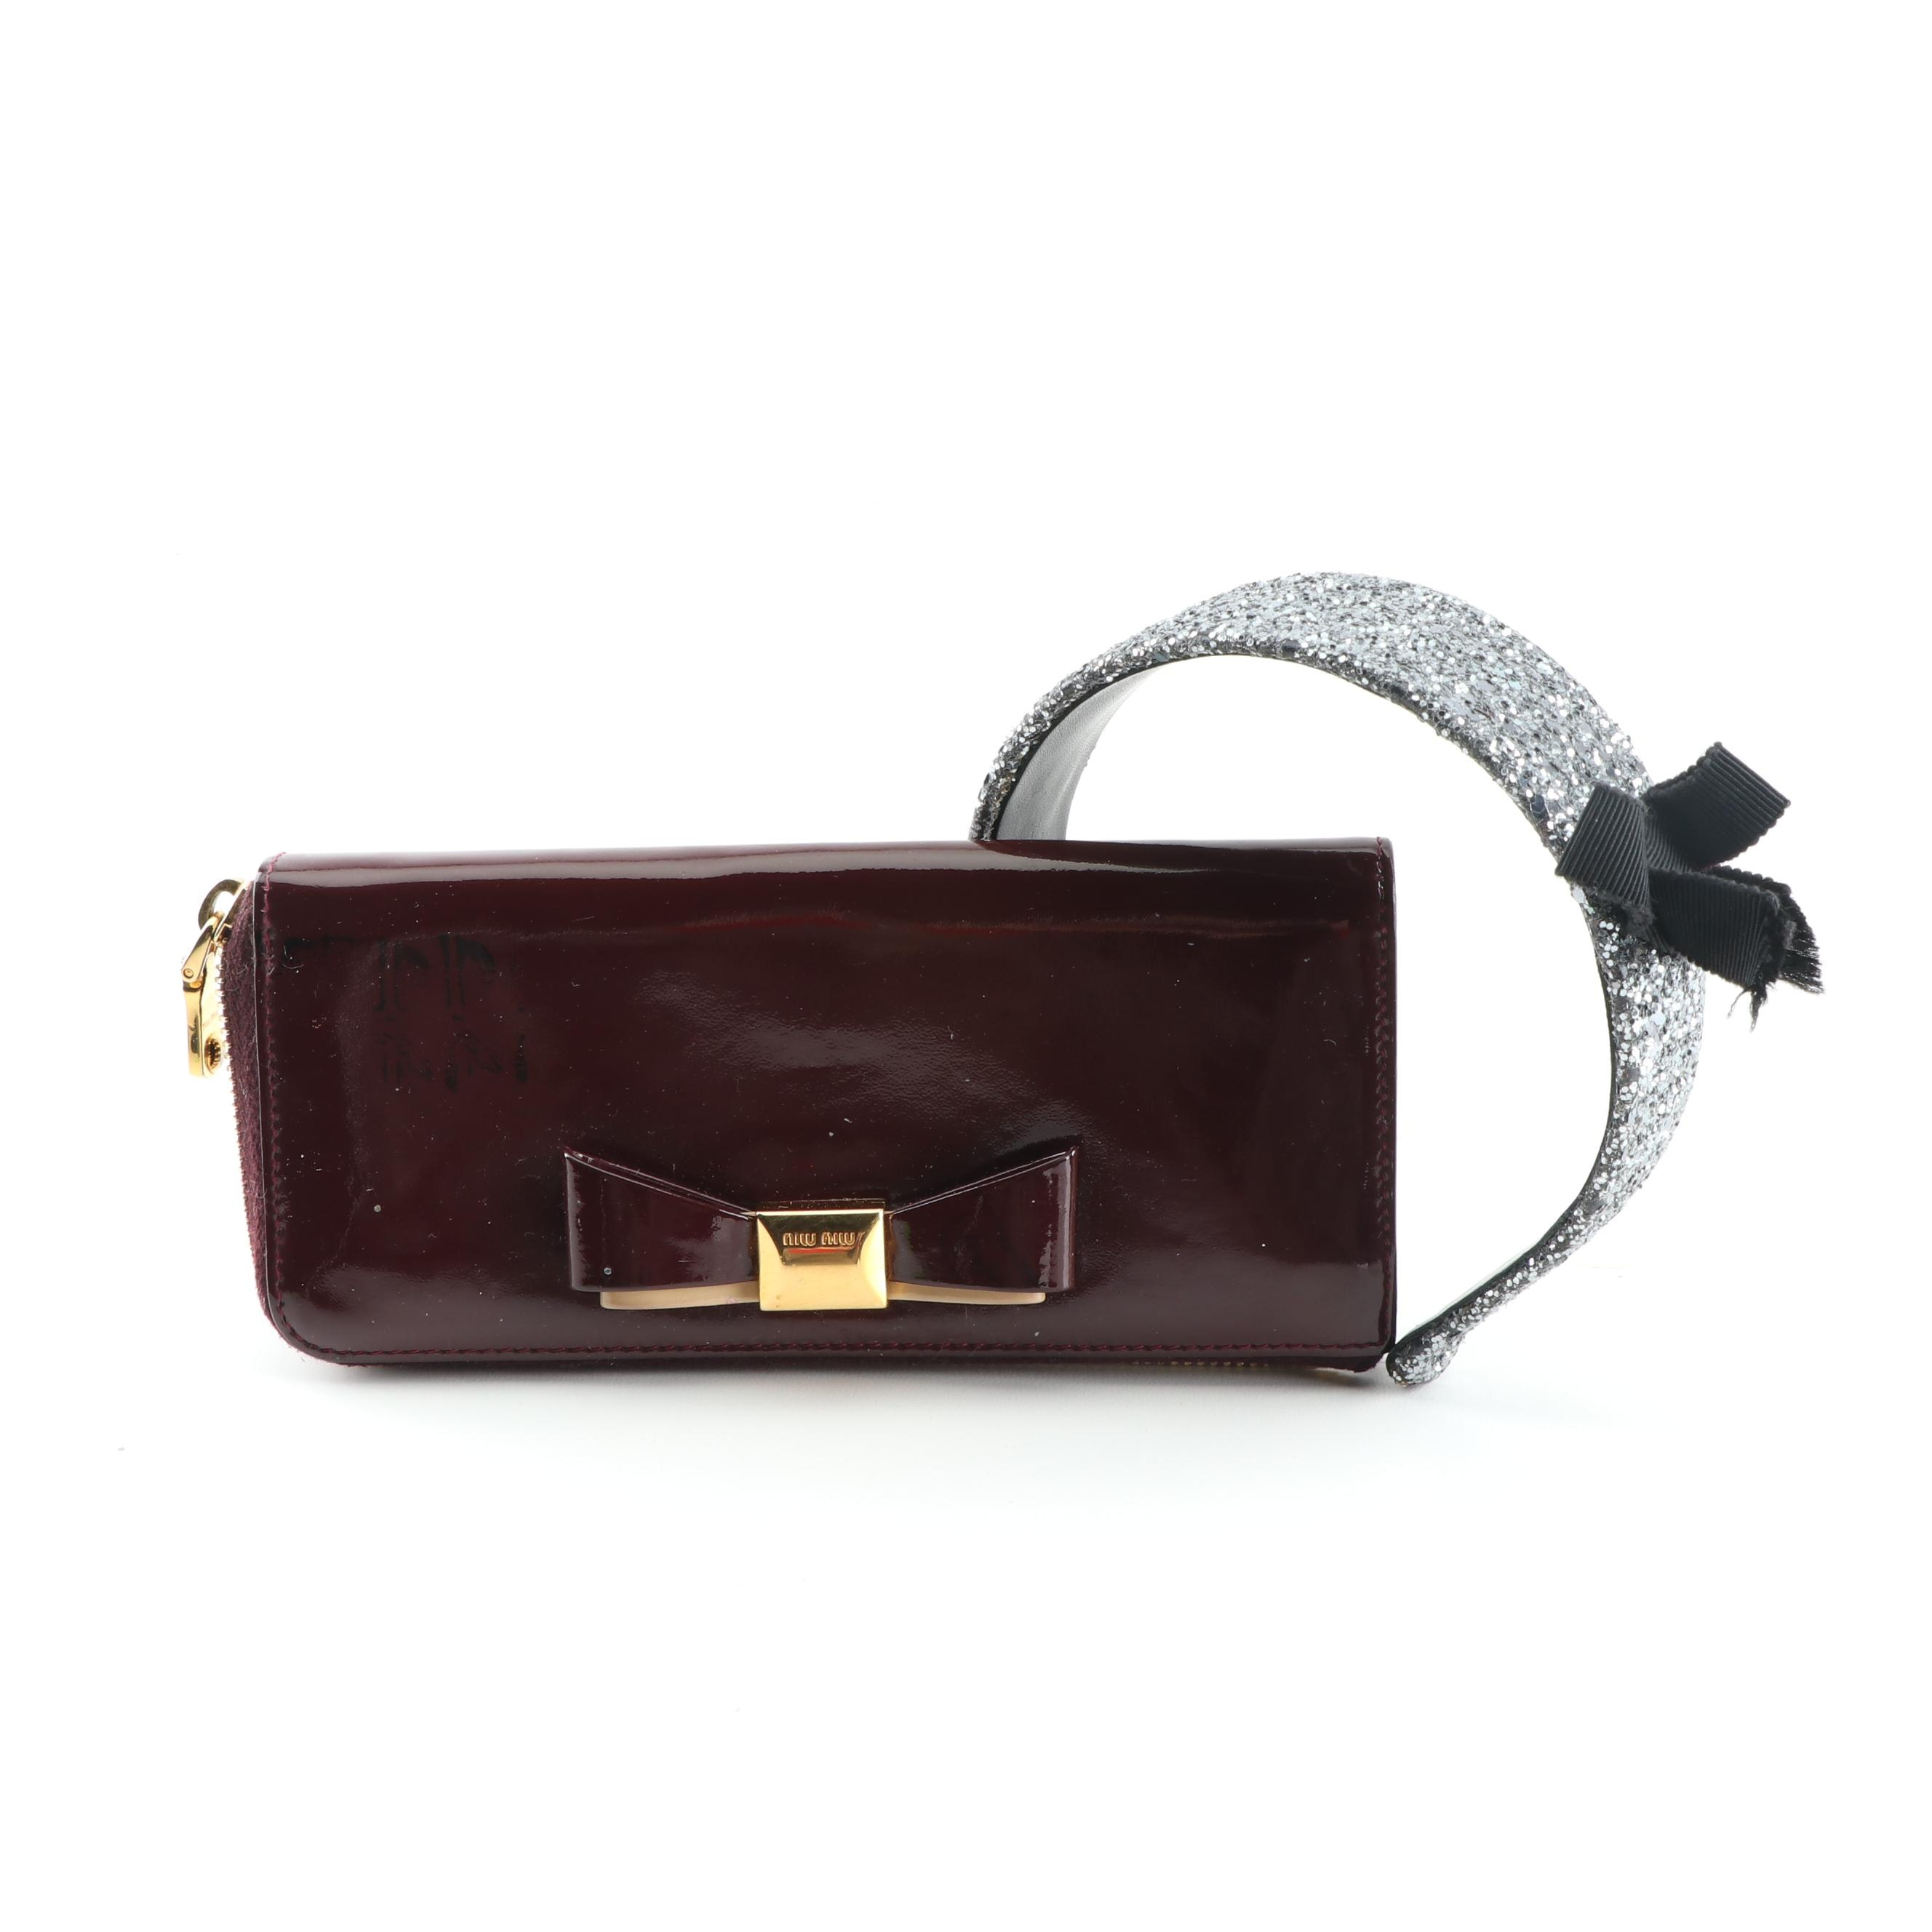 Miu Miu Patent Leather Wallet and Embellished Headband